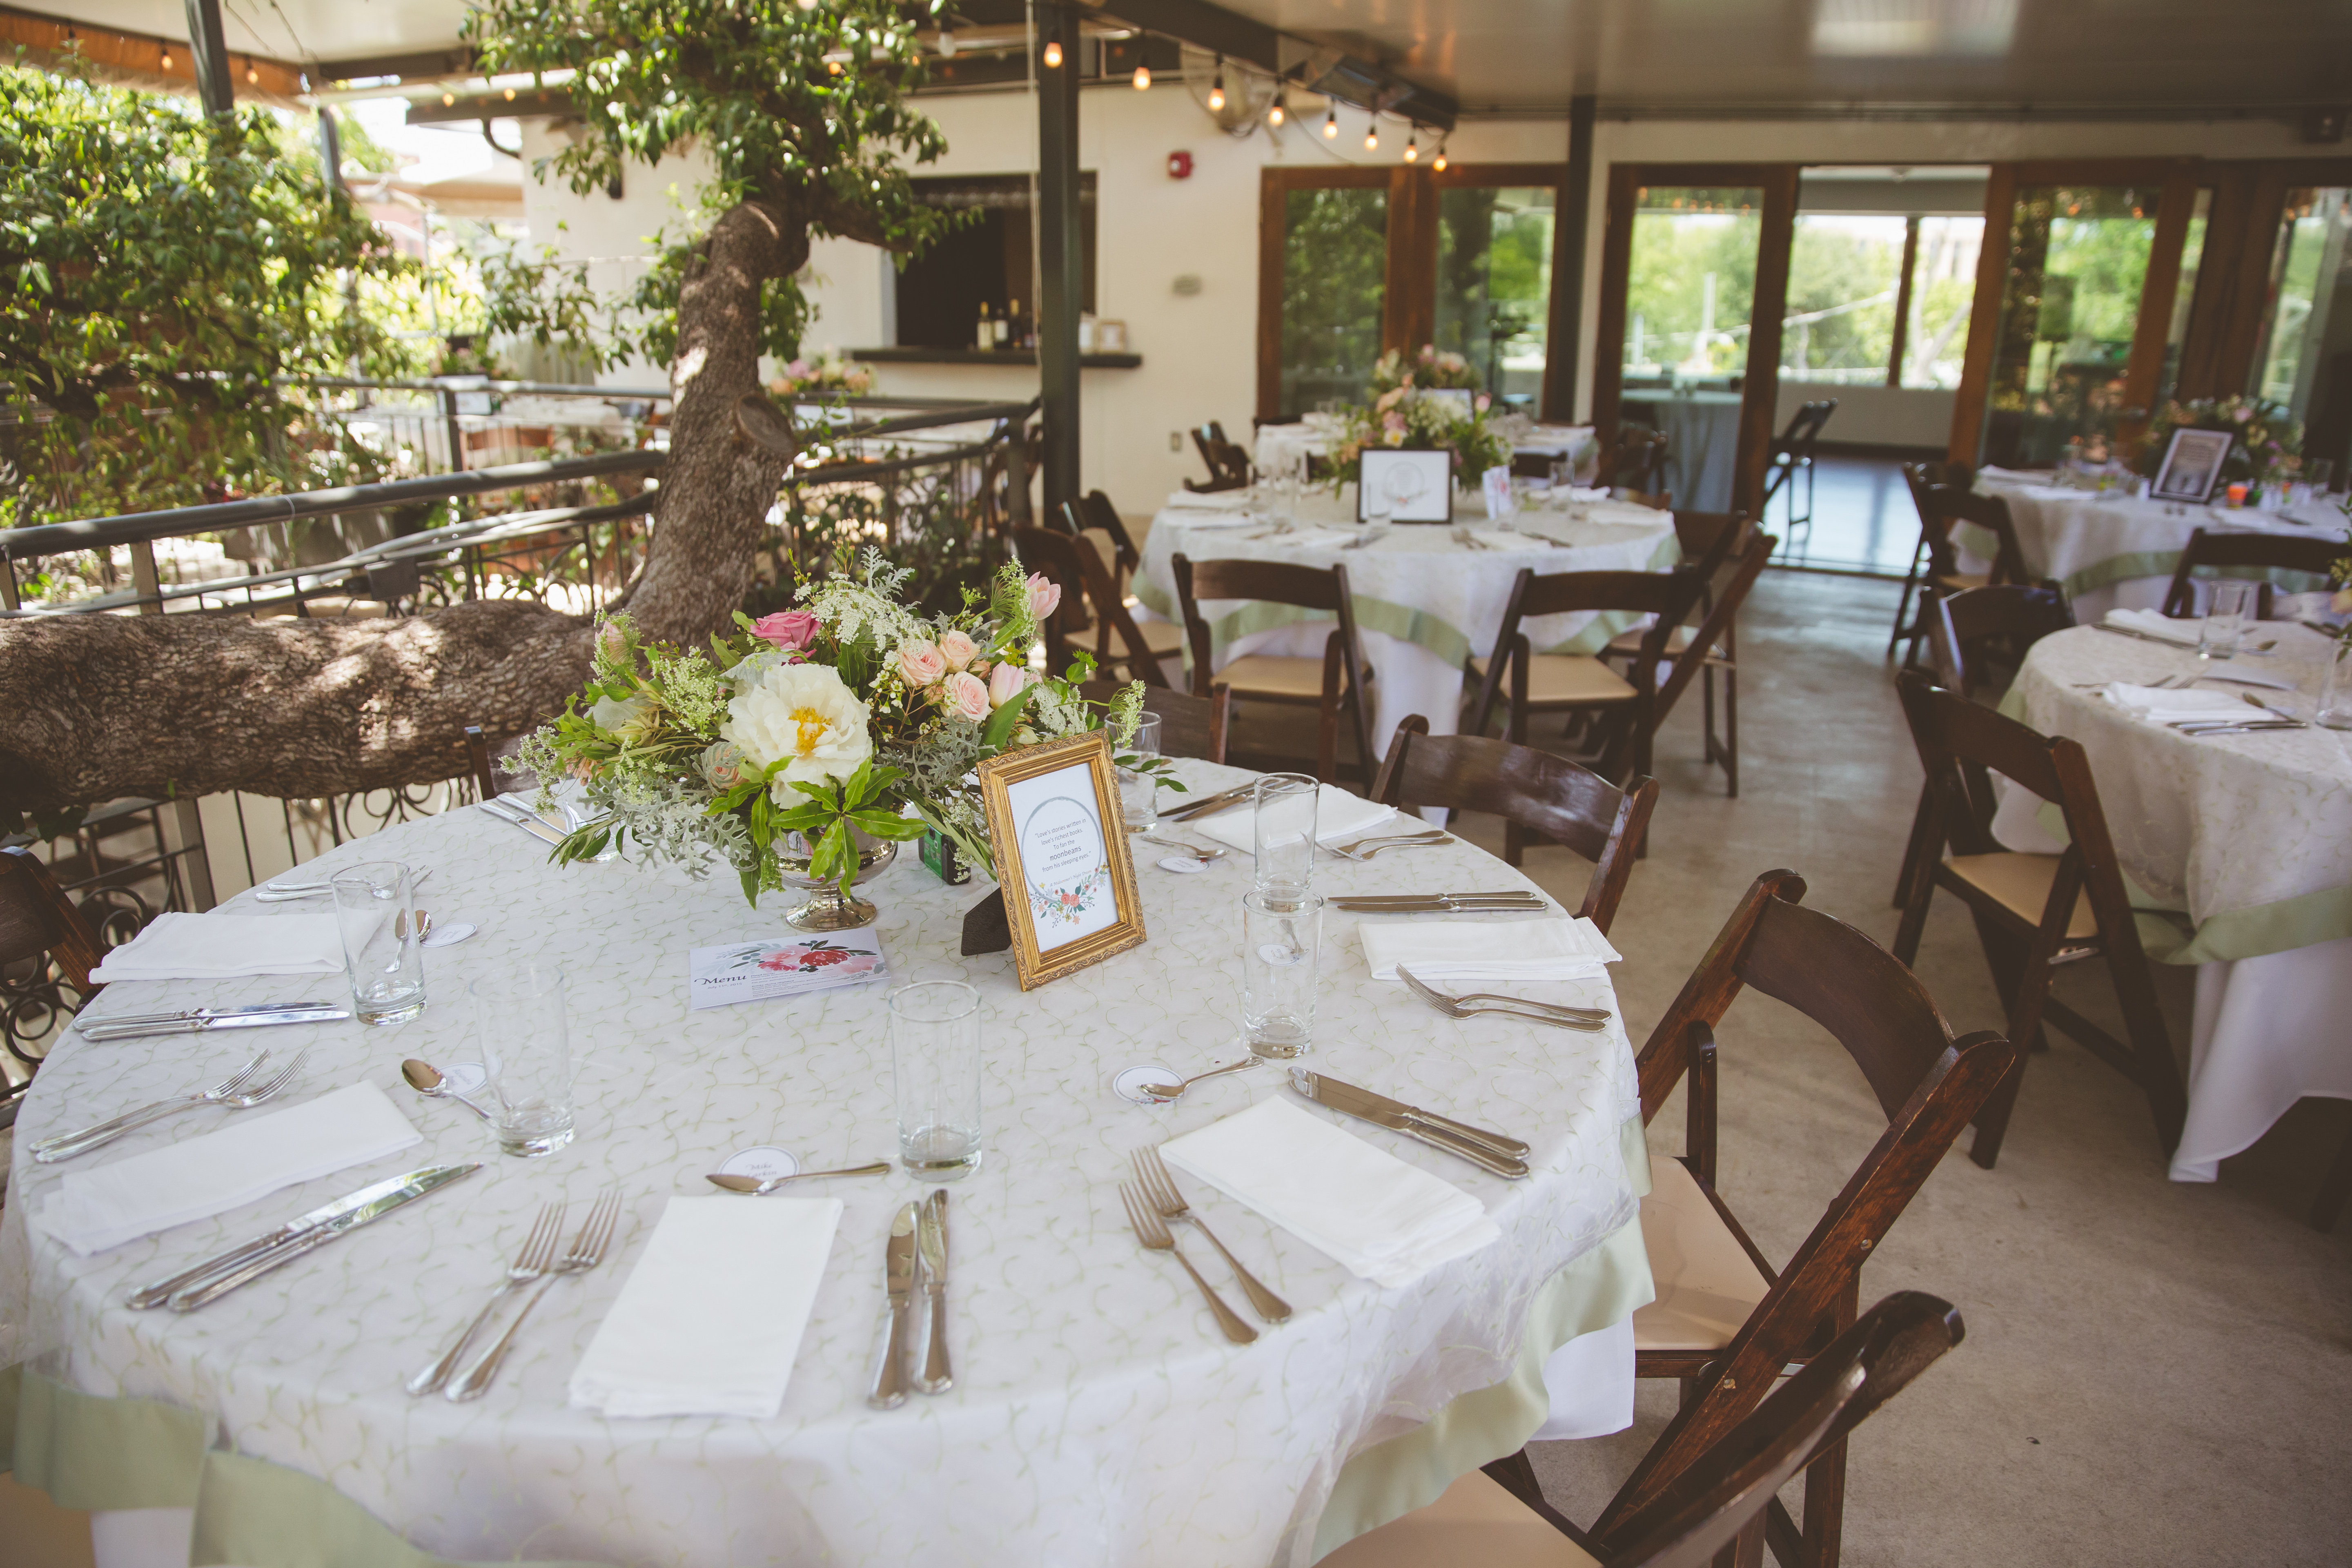 Best Austin Restaurants for Wedding Ceremonies and Receptions